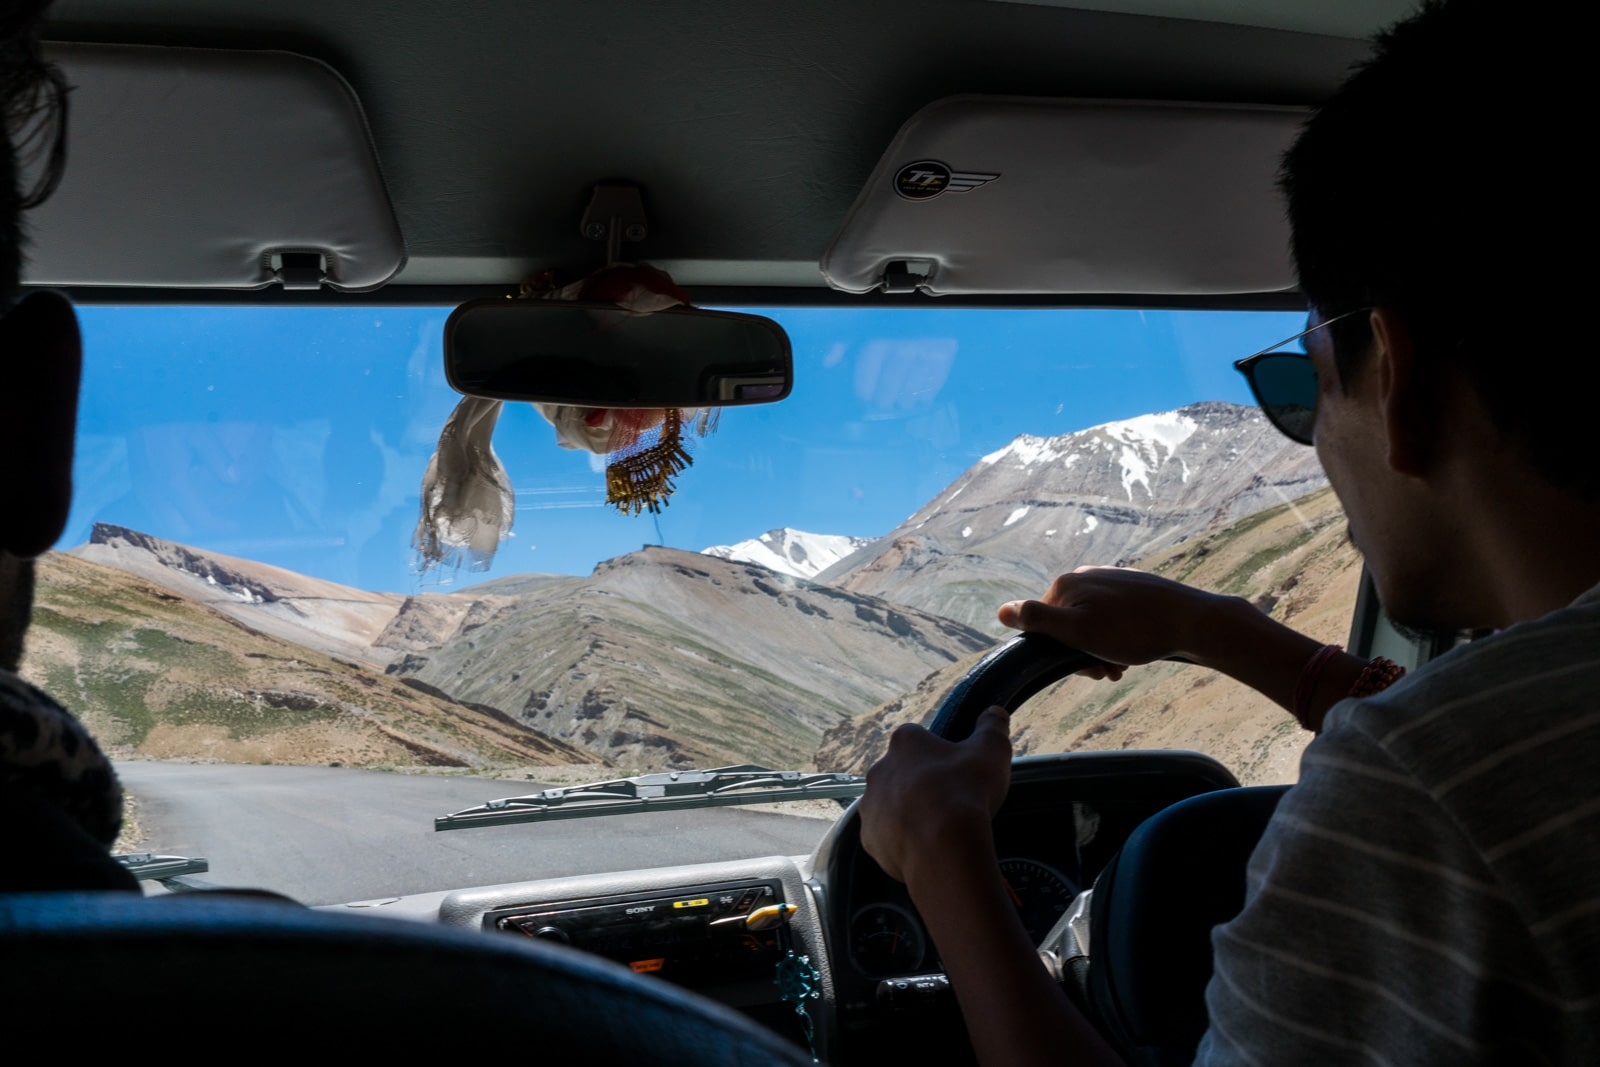 Hitchhiking the Leh - Manali highway - Driving in a truck over the mountain pass - Lost With Purpose travel blog